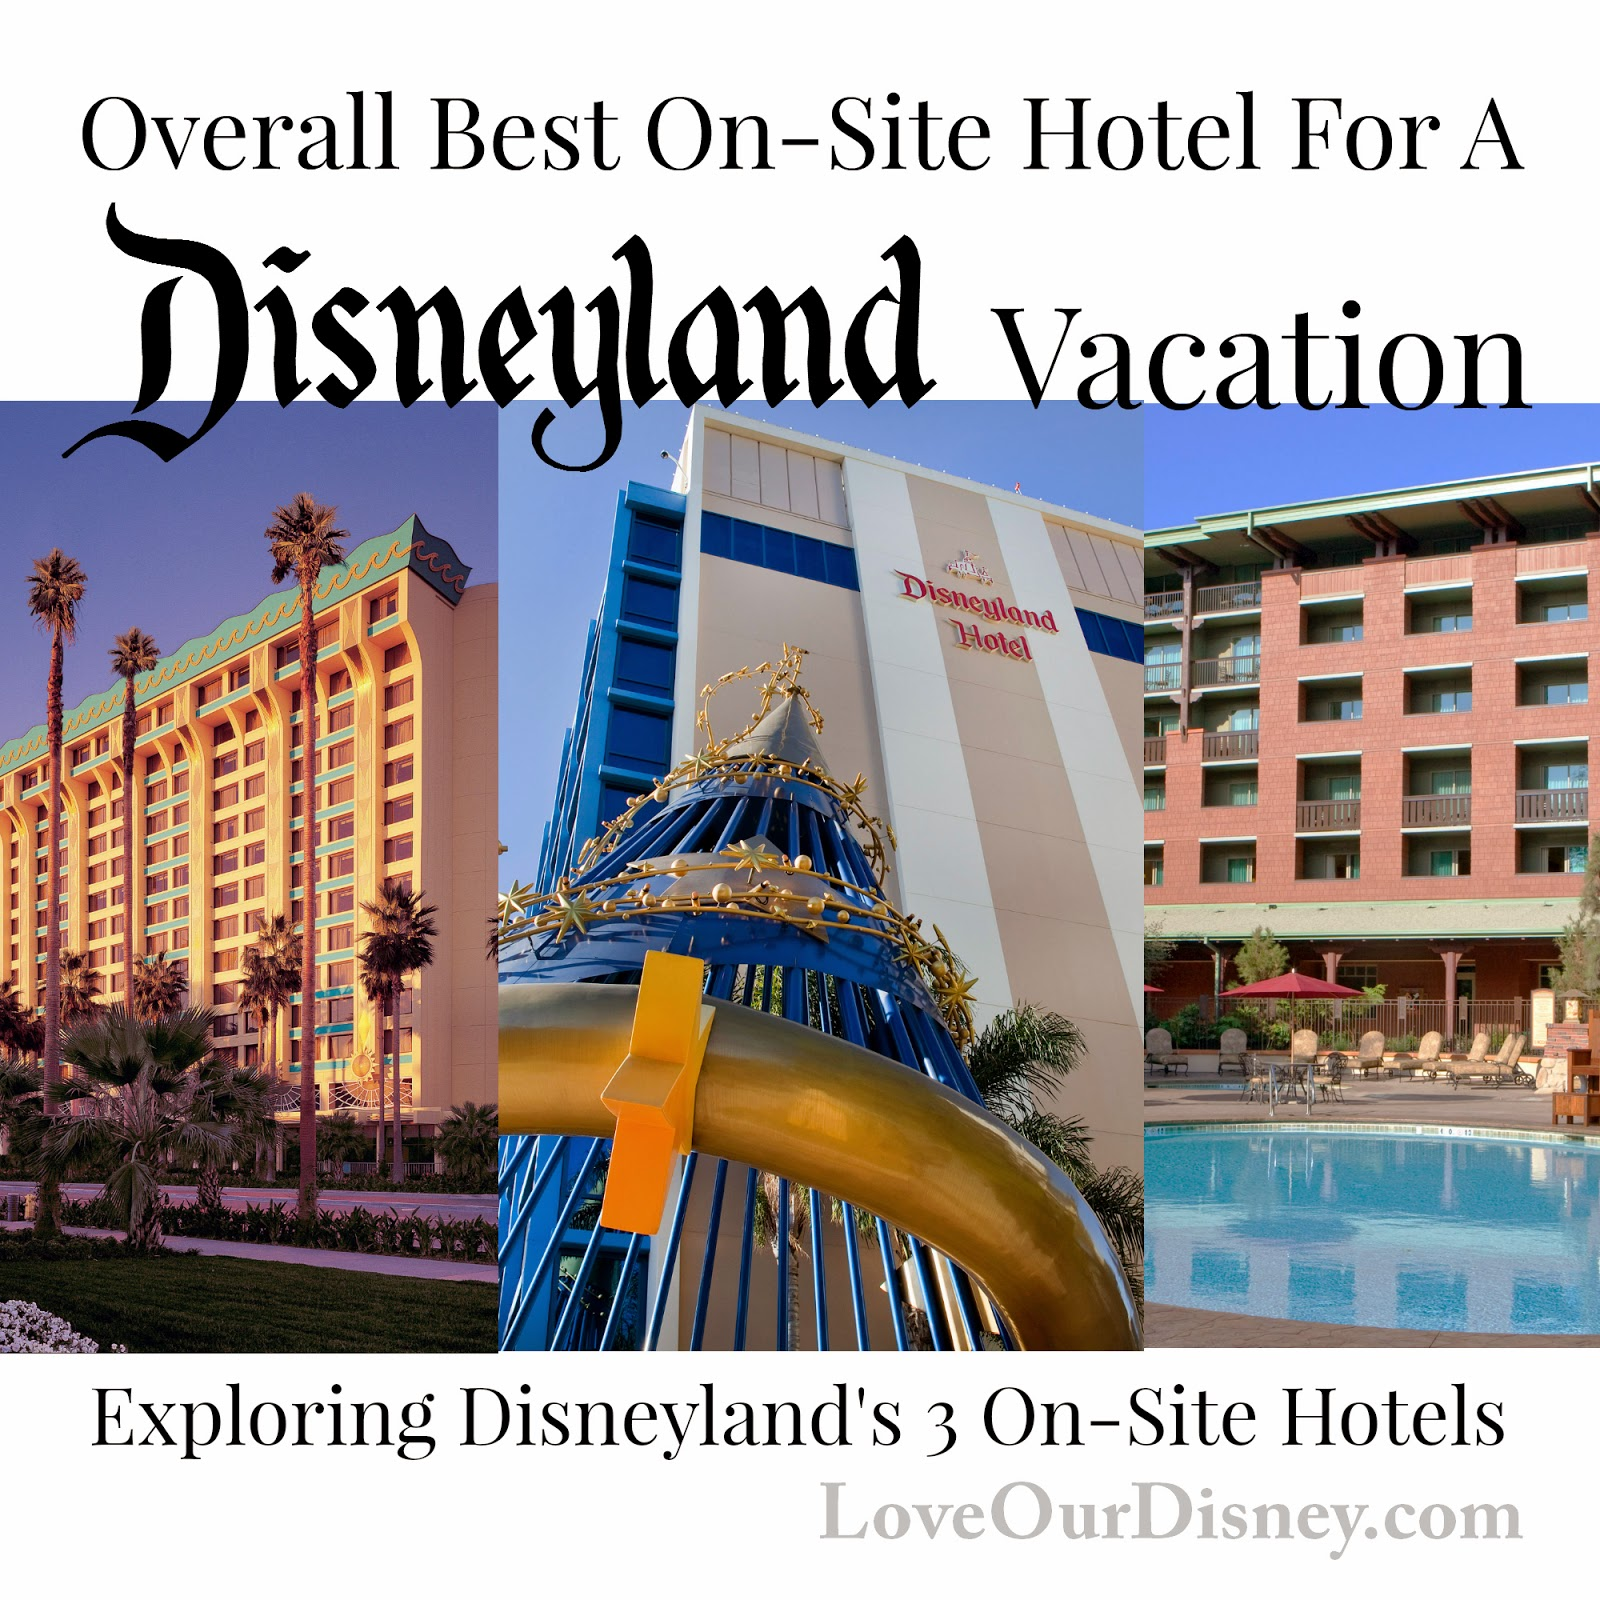 Which on-site hotel is best for a Disneyland Vacation? LoveOurDisney.com has the answer